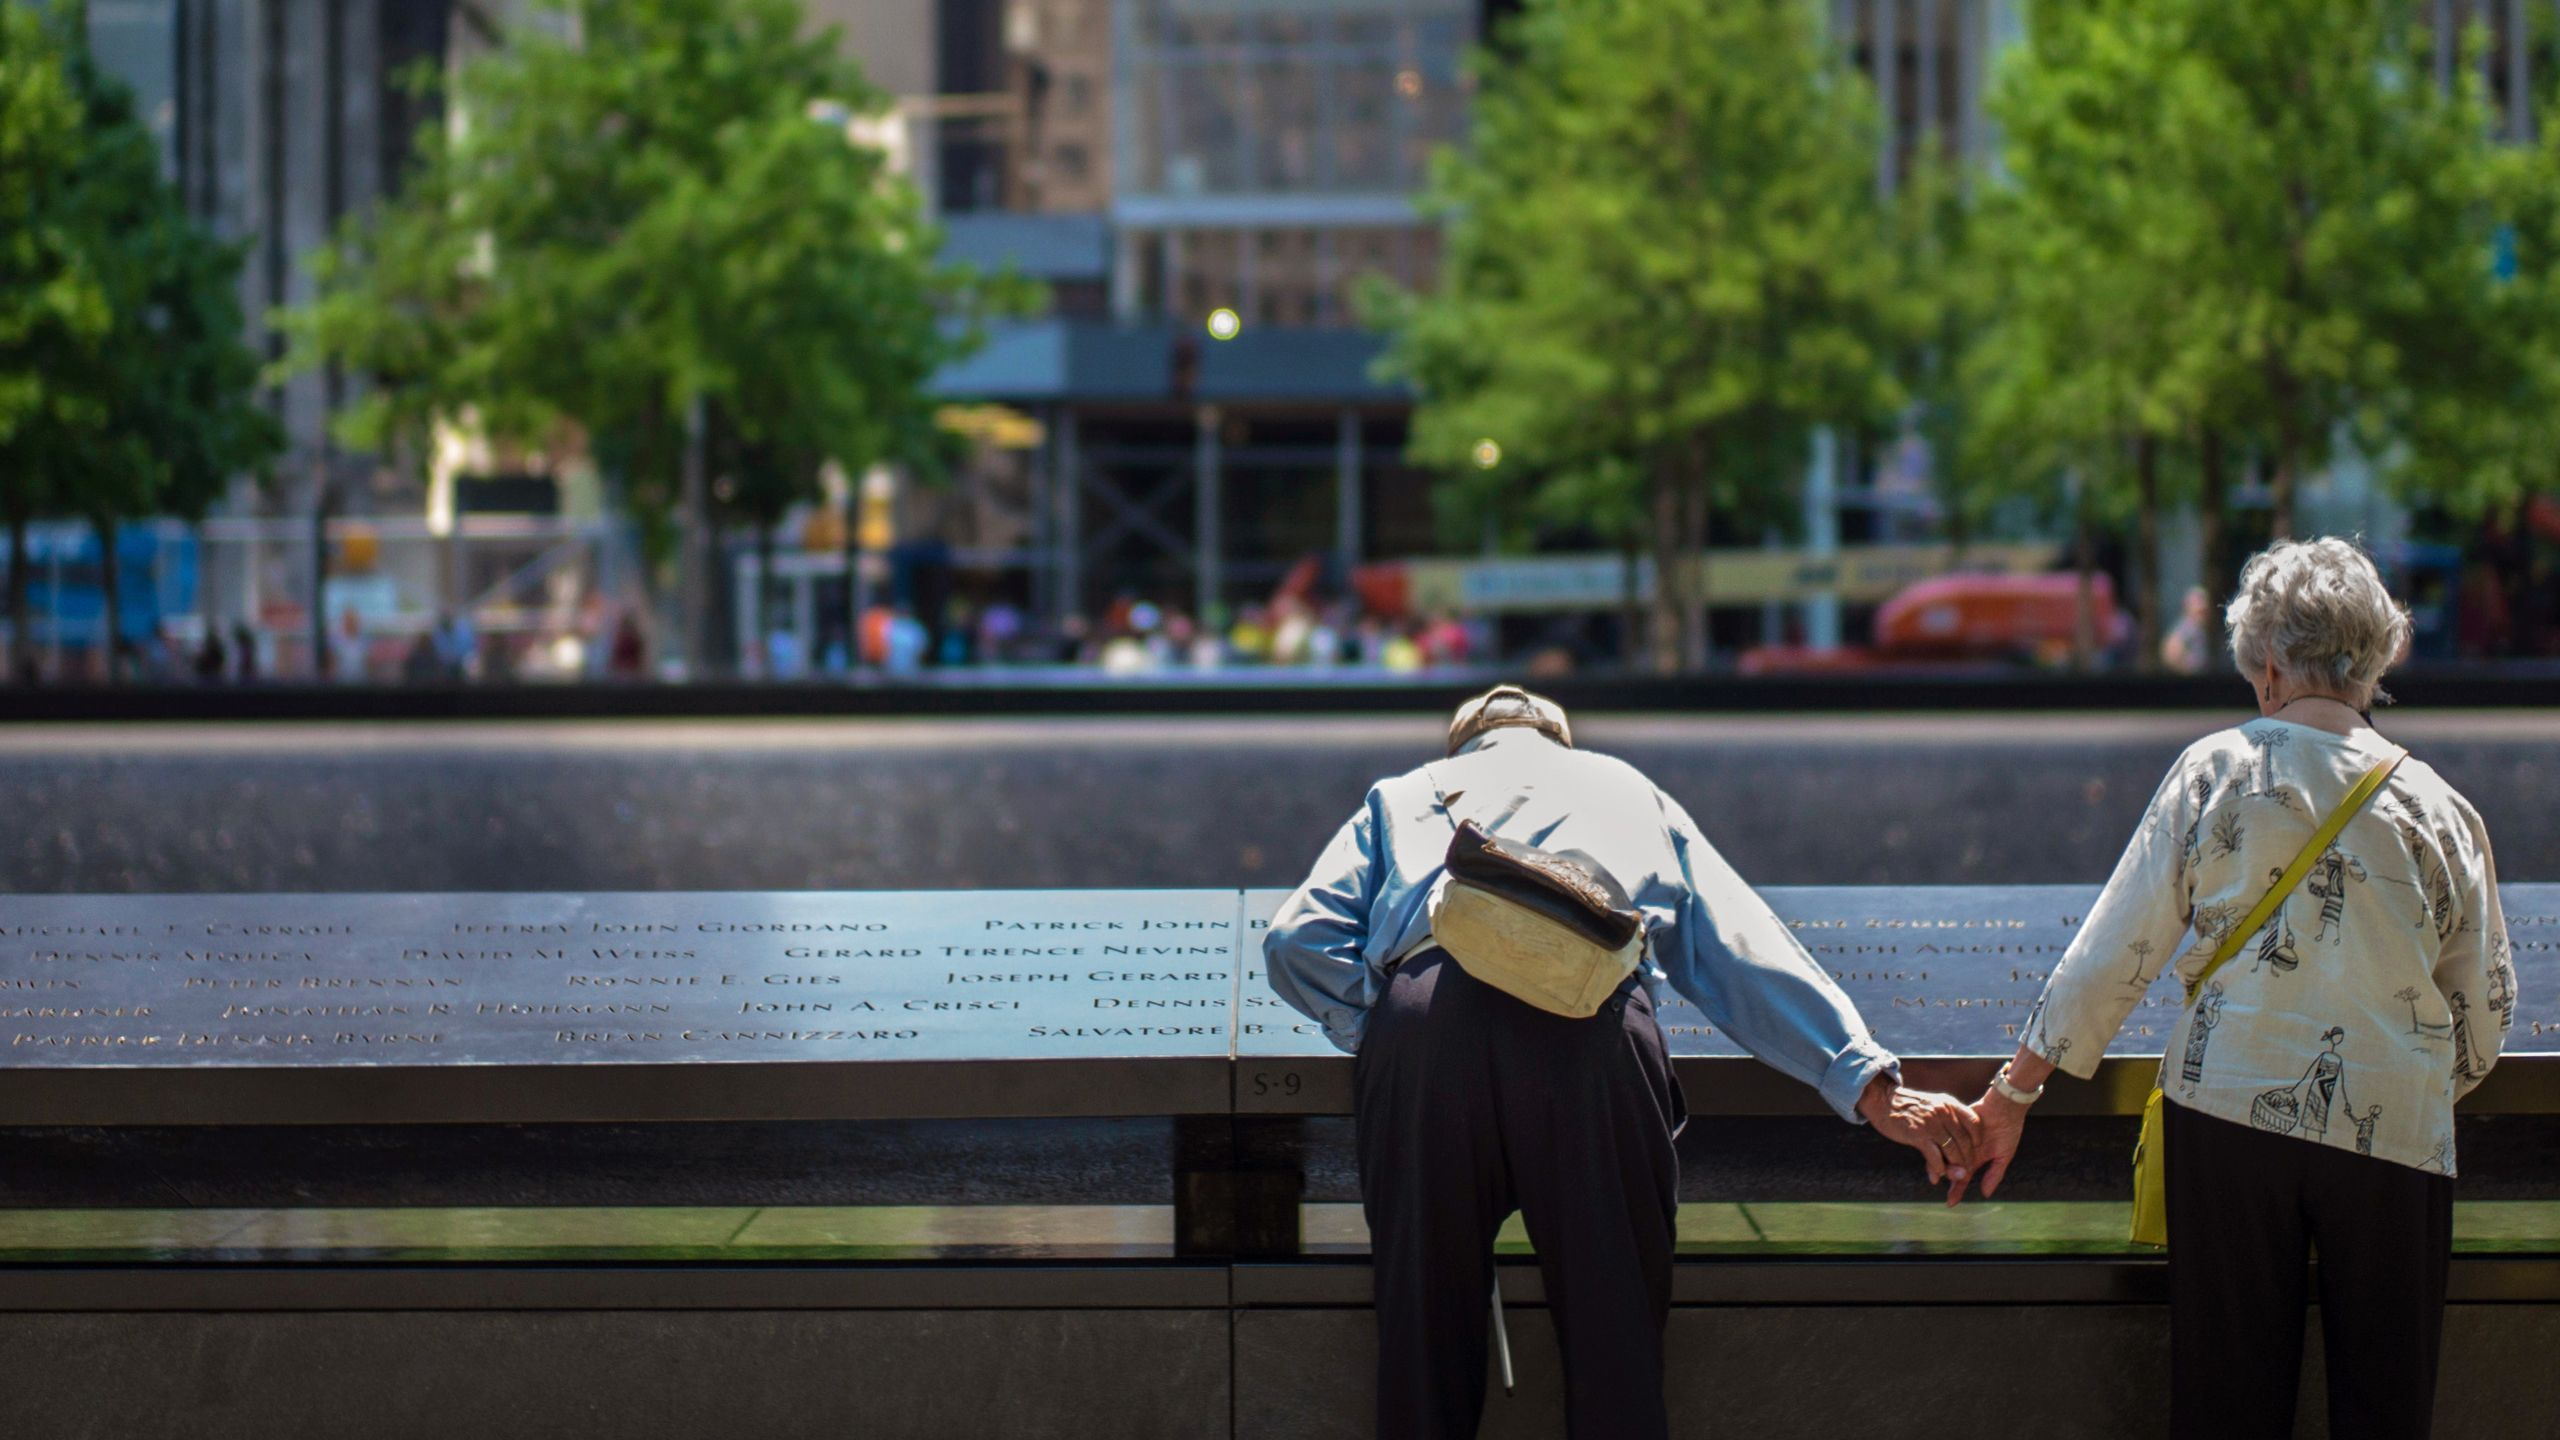 An elderly man holds hands with an elderly woman as he bends down to read names on the Memorial. Four green trees can be seen in the background, on the other side of the Memorial reflecting pool.